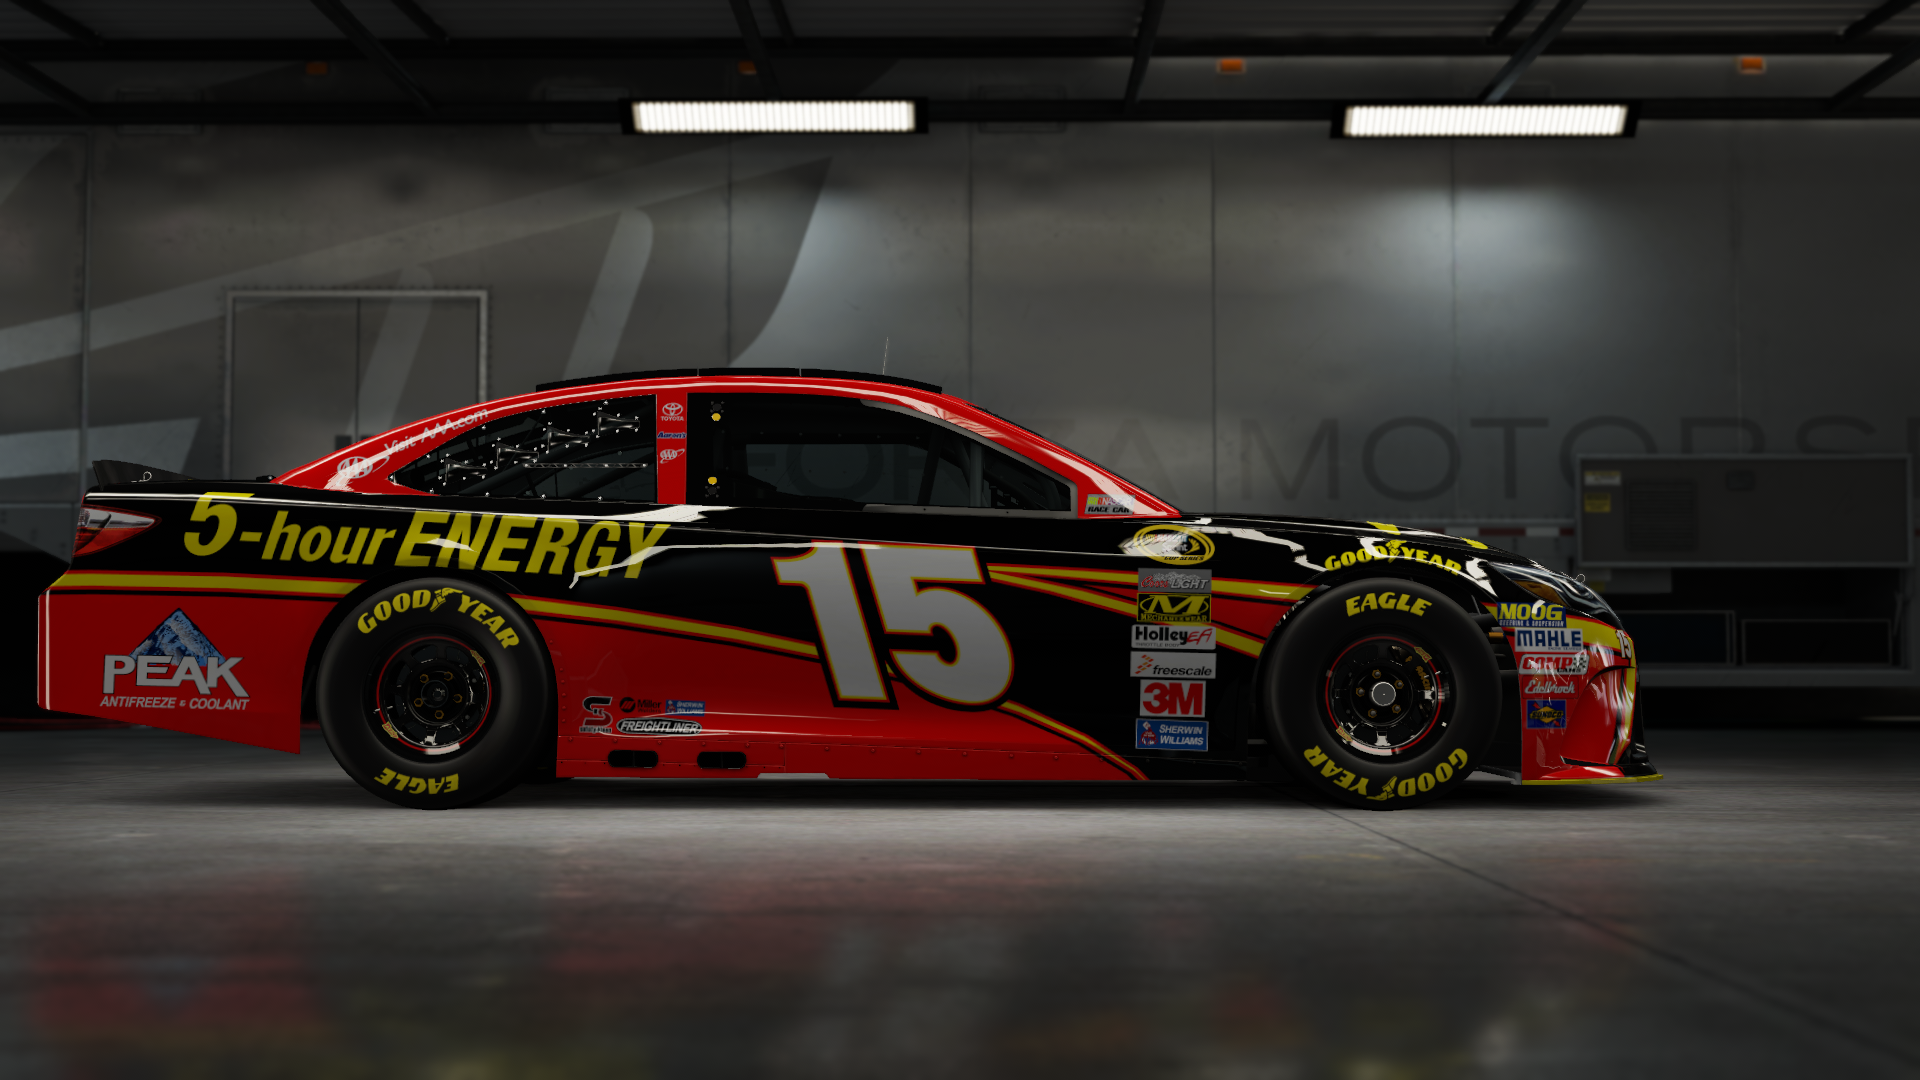 On the #20 Joe Gibbs Racing DeWalt Camry, Made by SweedishThunder